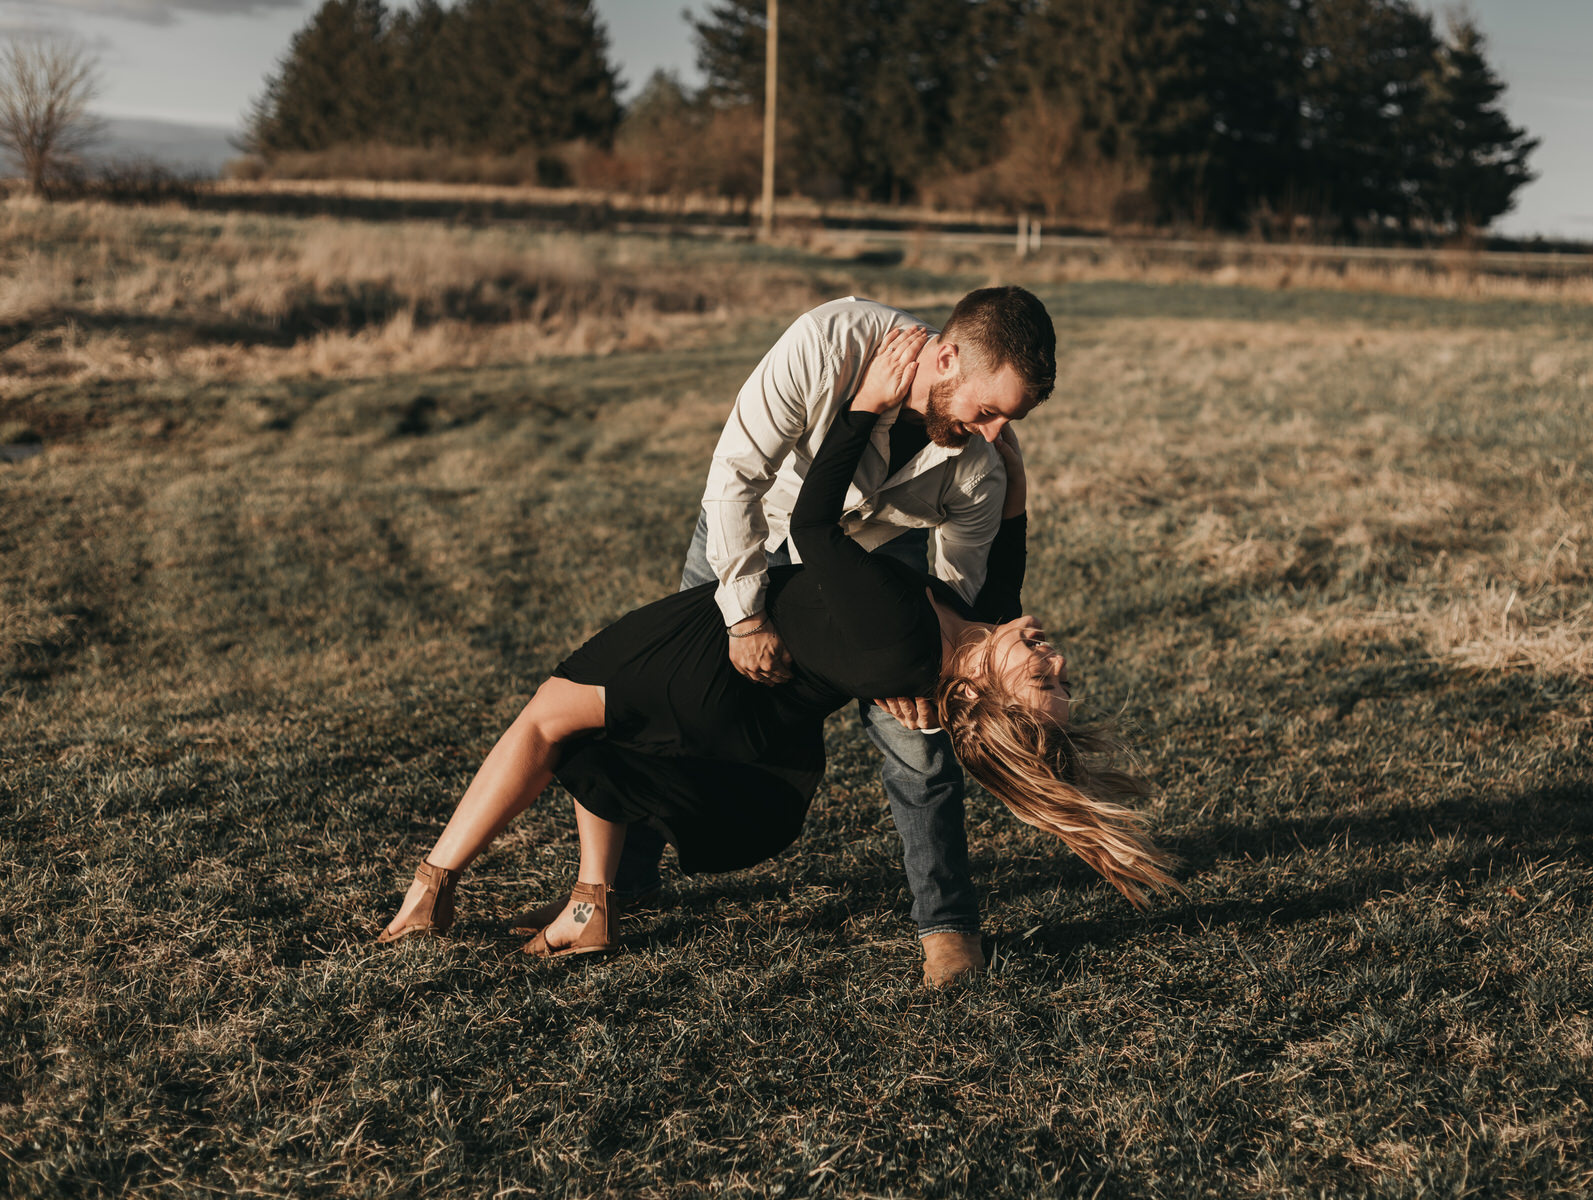 Lauren & Tom Adventurous Outdoor Engagement Family Farm Dancing Dip